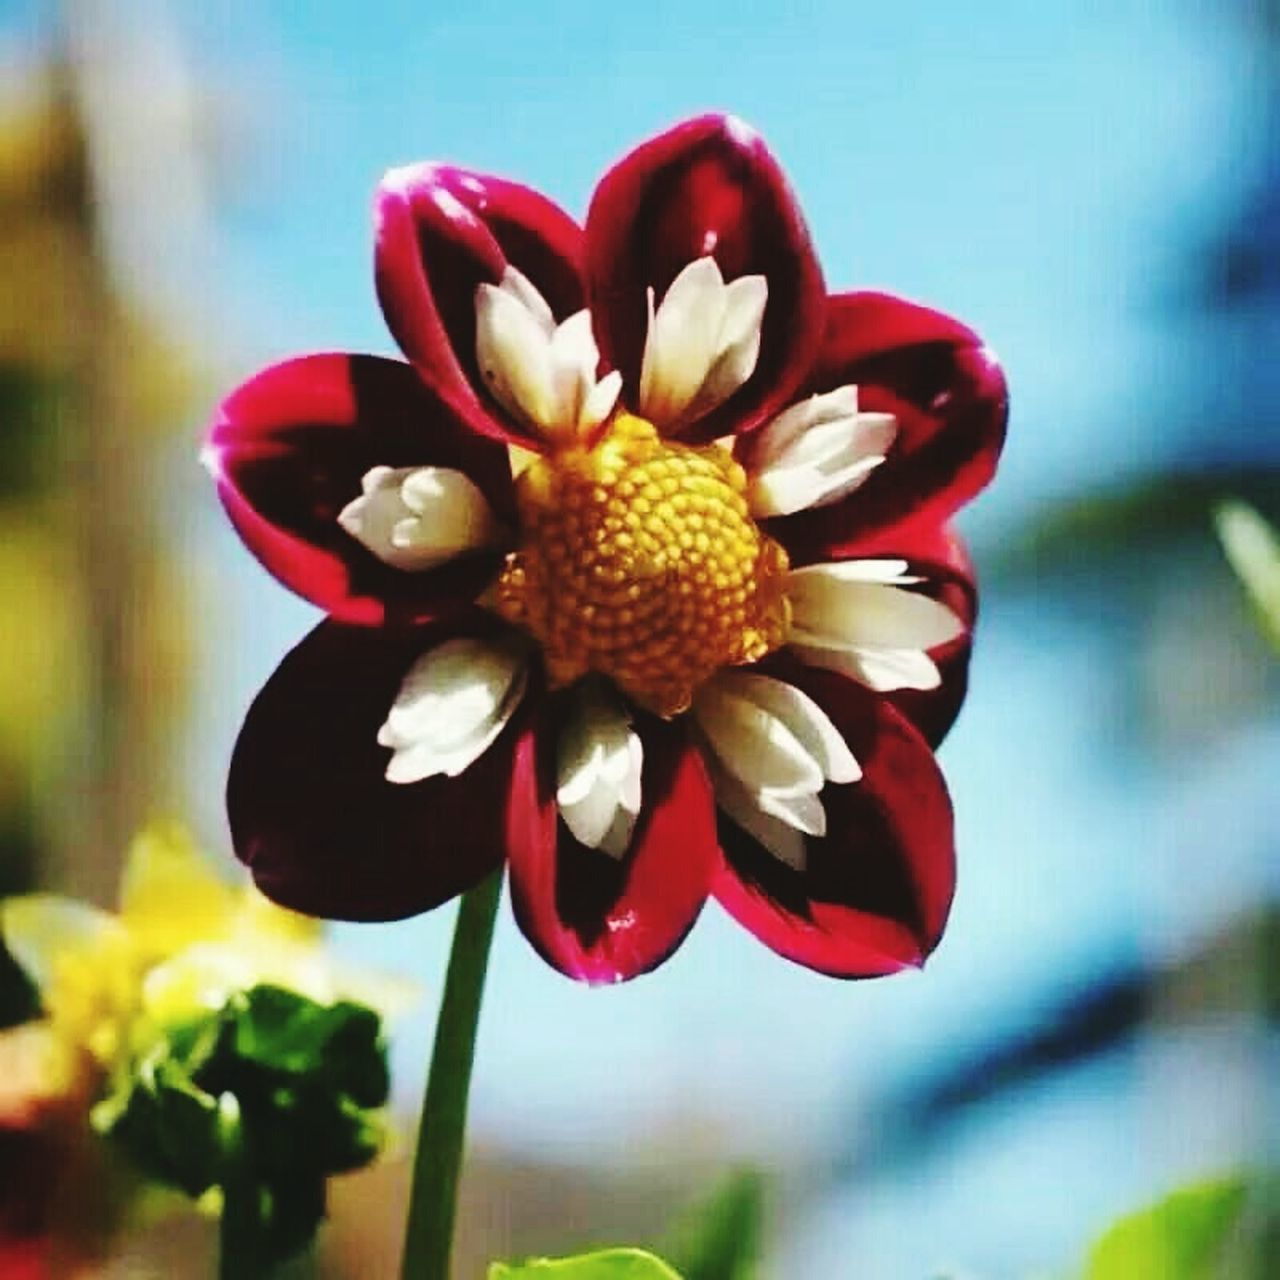 flower, petal, flower head, red, nature, close-up, fragility, beauty in nature, freshness, focus on foreground, growth, blooming, plant, no people, yellow, outdoors, day